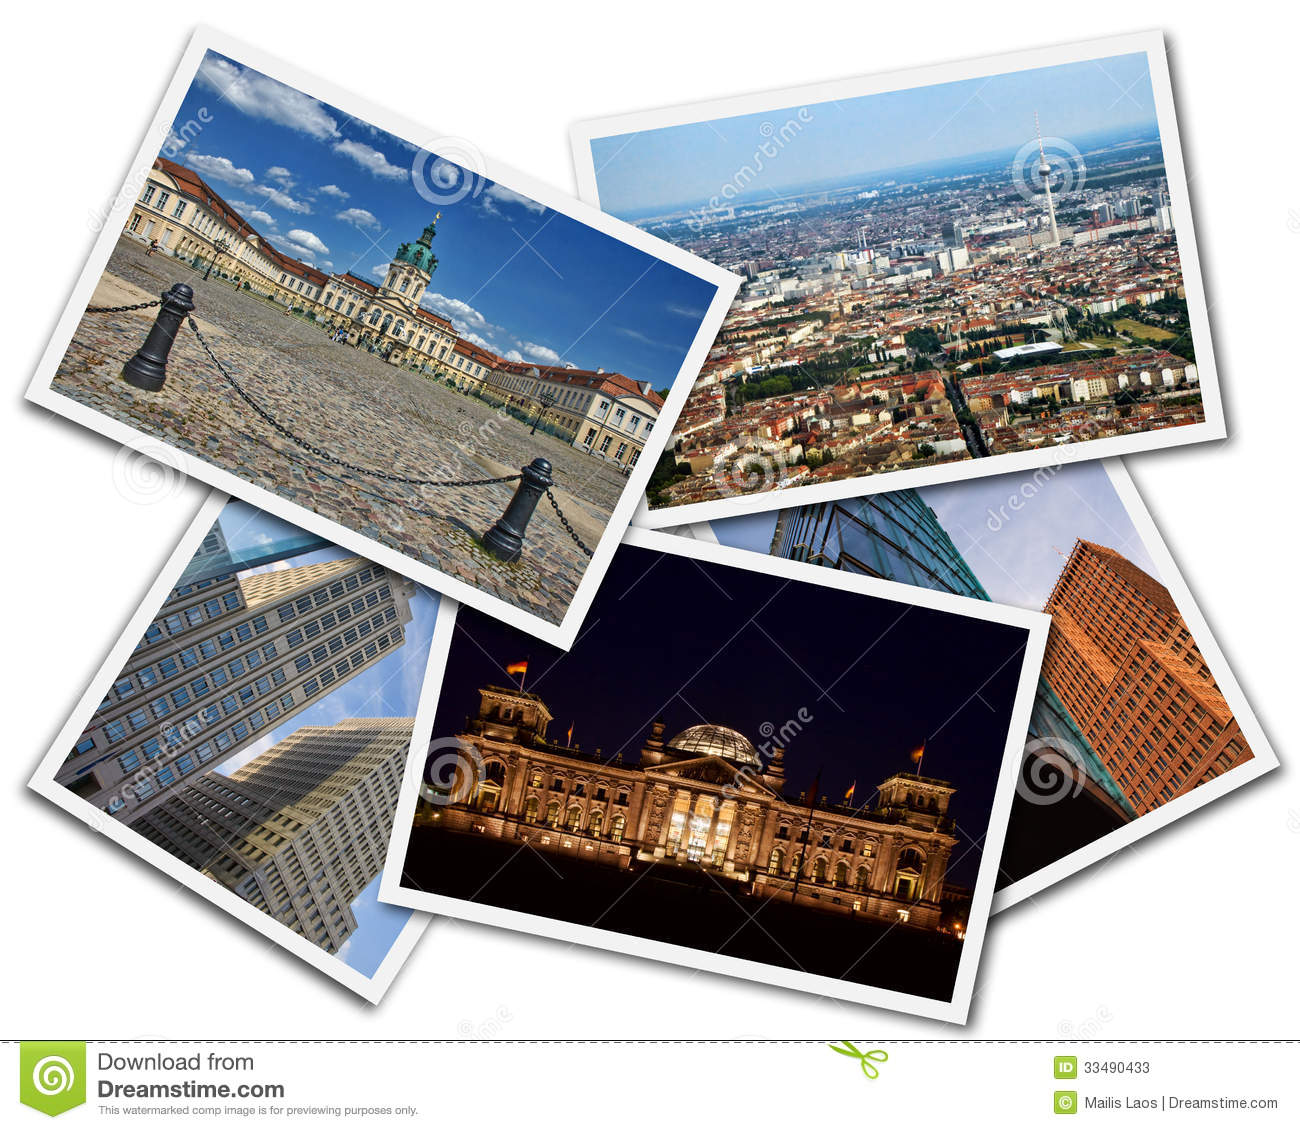 Download Berlin Collage stock image. Image of cityscape, column - 33490433